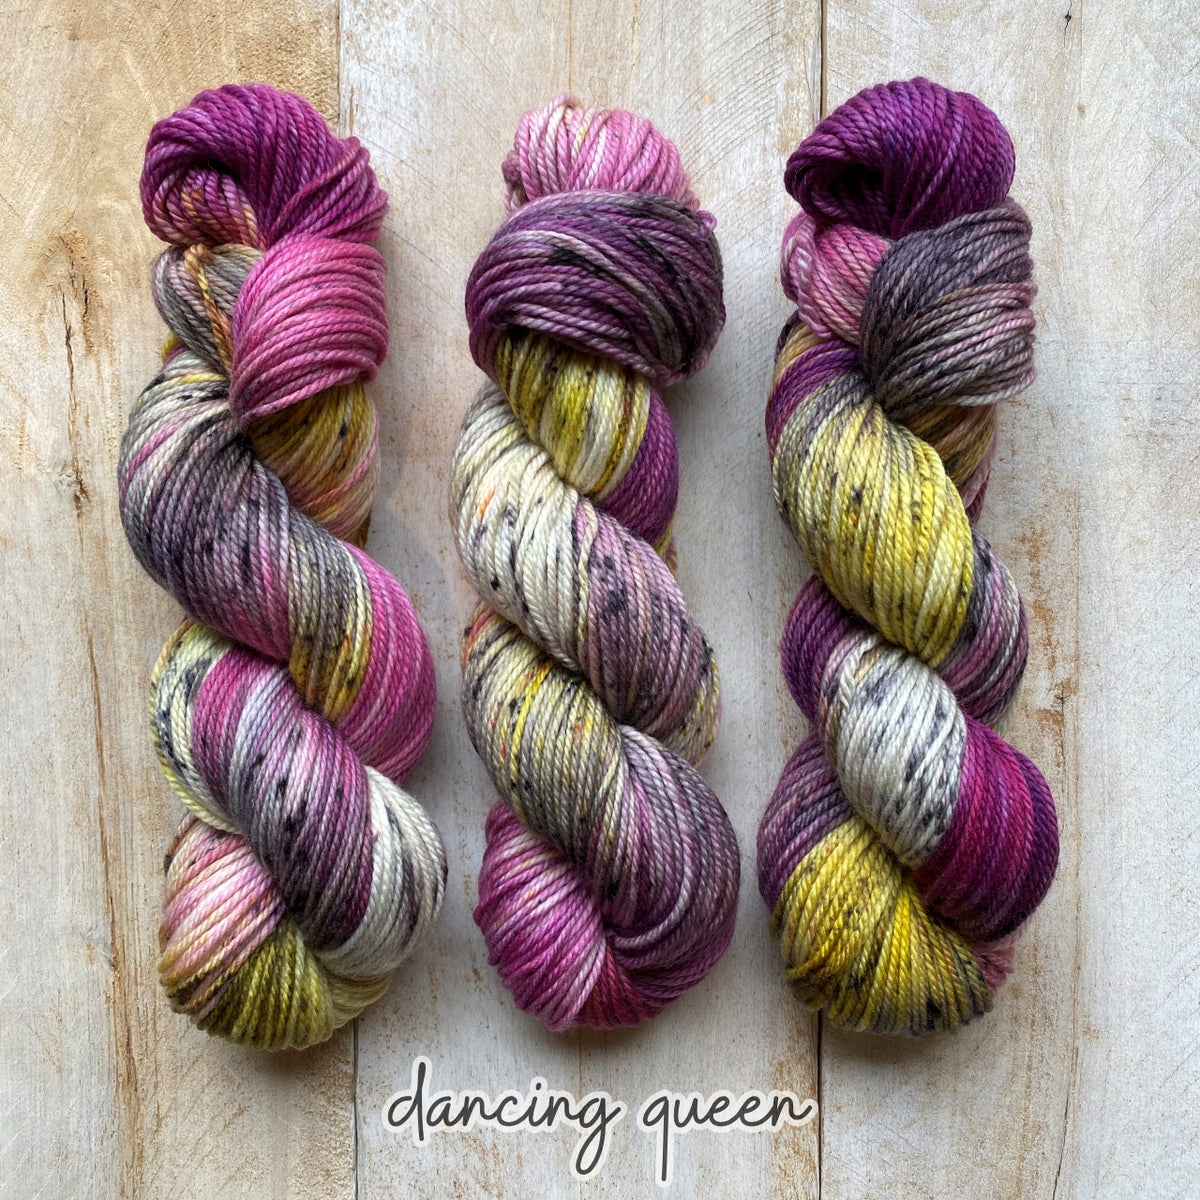 DANCING QUEEN by Louise Robert Design | MERINO WORSTED hand-dyed Speckled yarn